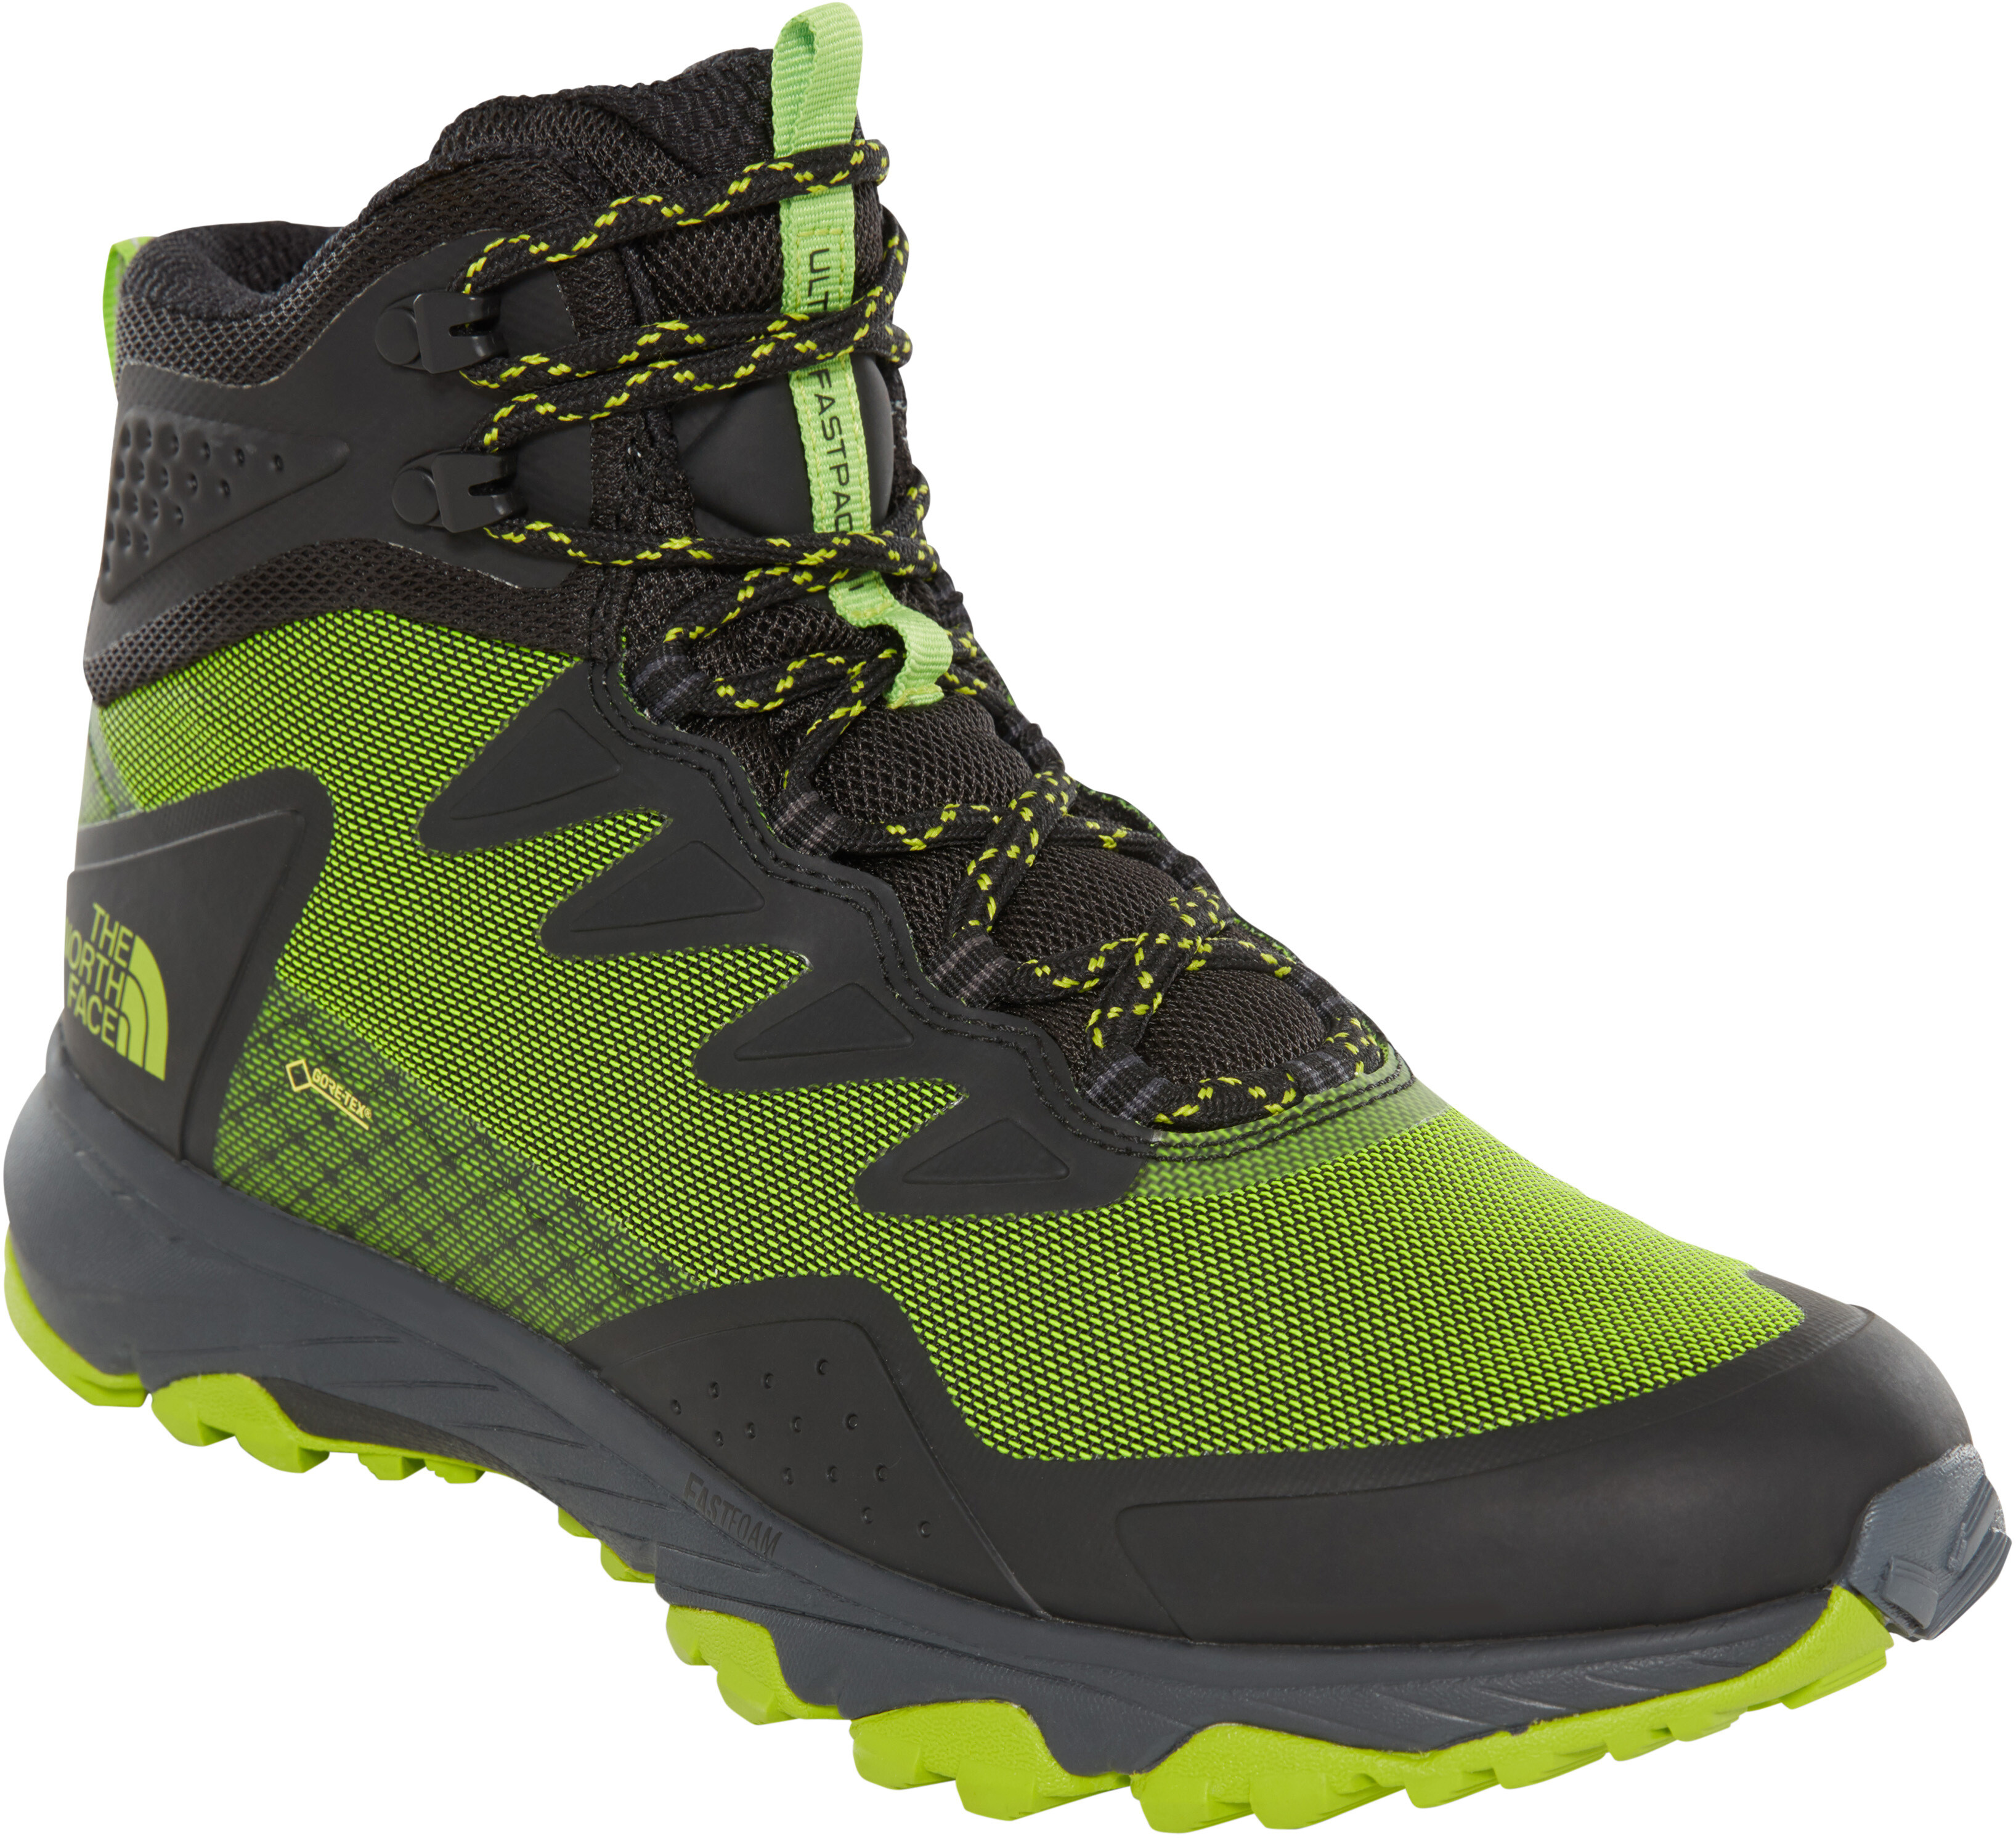 6f6a591c94 The North Face Ultra Fastpack III Mid GTX - Chaussures Homme - vert/noir